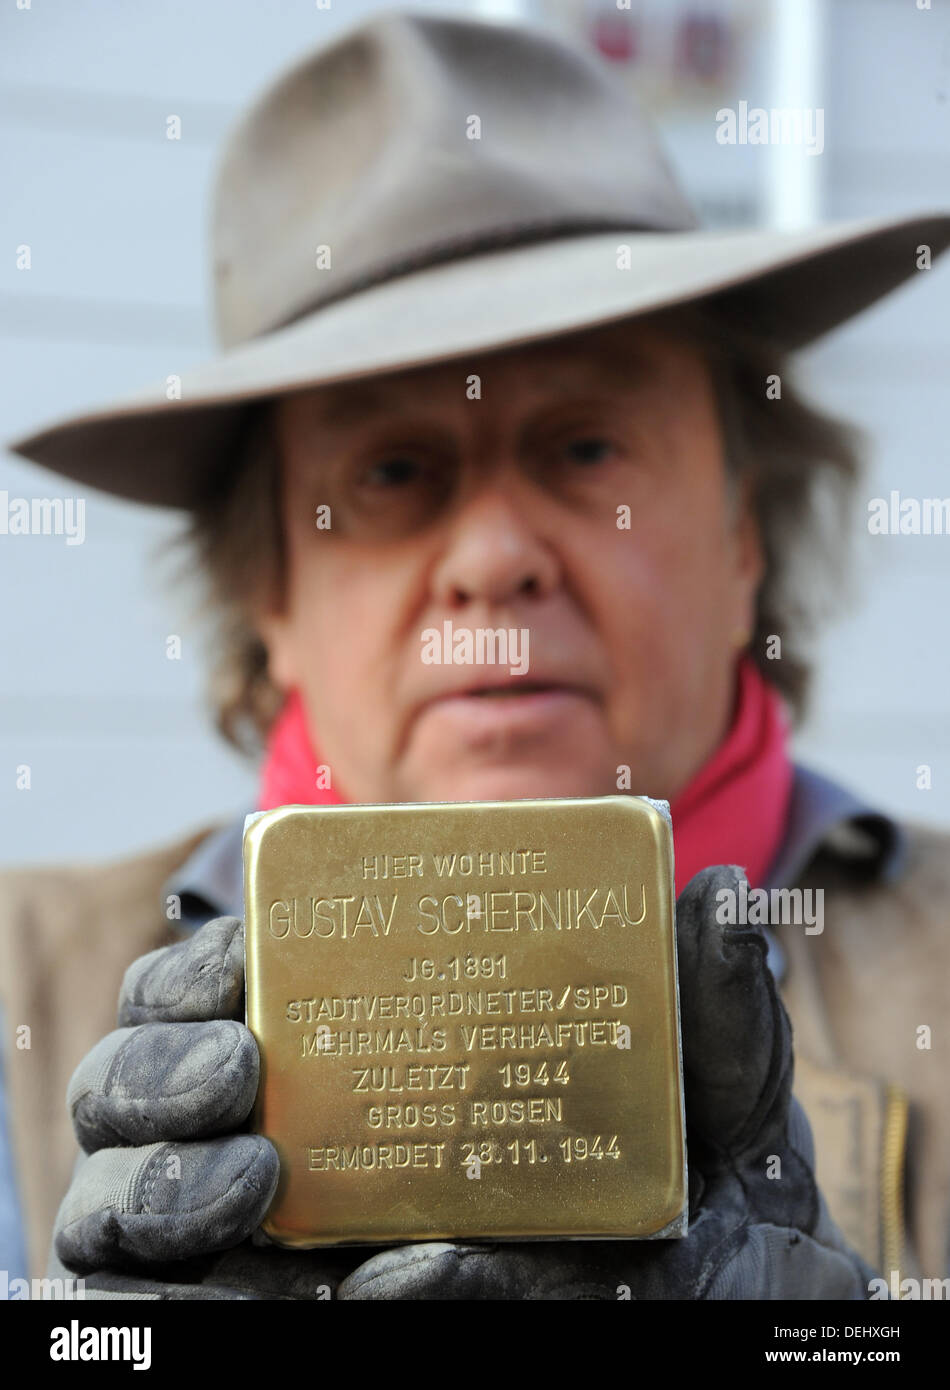 The artist Gunter Demnig holds up the 'Stolperstein' for Gustav Schernikau in Brandenburg an der Havel, Germany, 19 September 2013. Brandenburg an der Havel is the 892nd city that installs these memorial stones in front of victims of the NS-Regime in front of their last domiciles. Photo: BERND SETTNIK - Stock Image